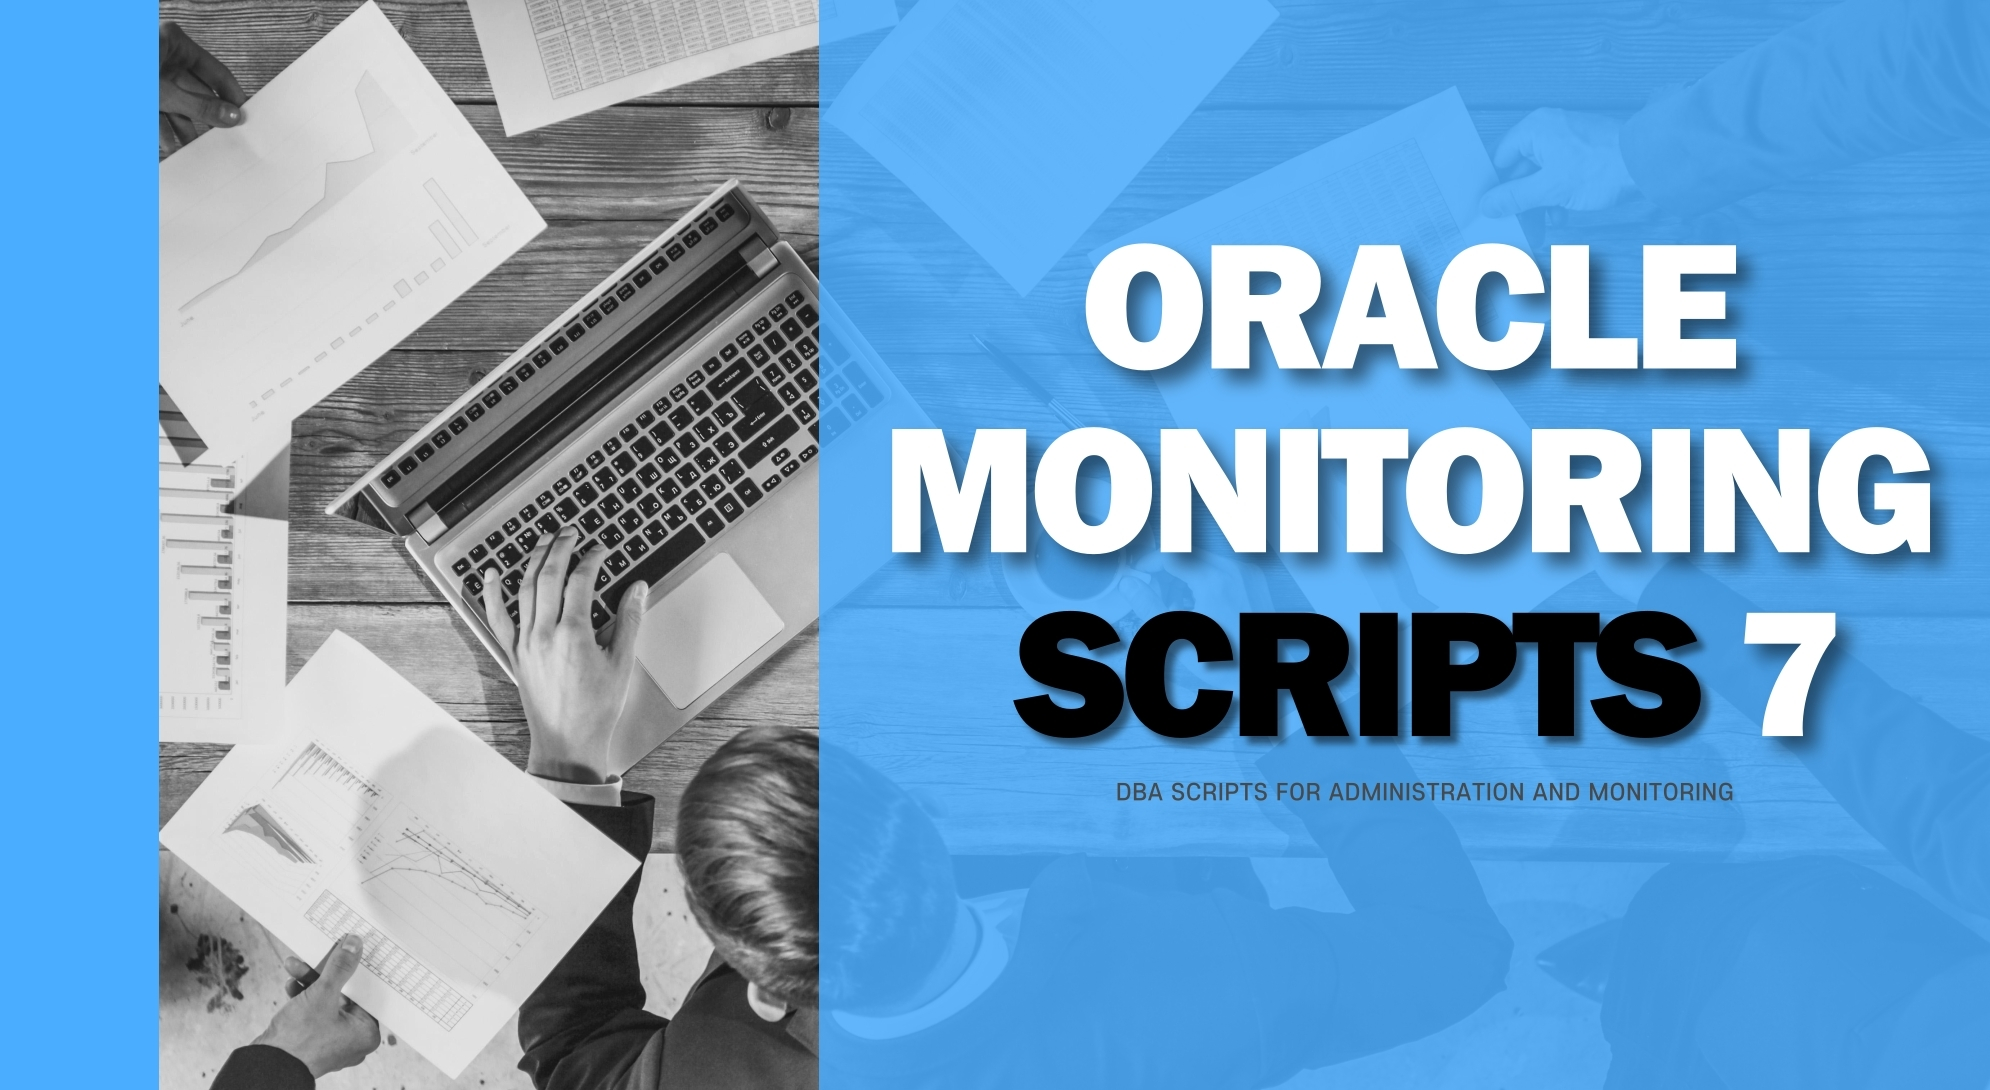 Oracle Monitoring Scripts 7